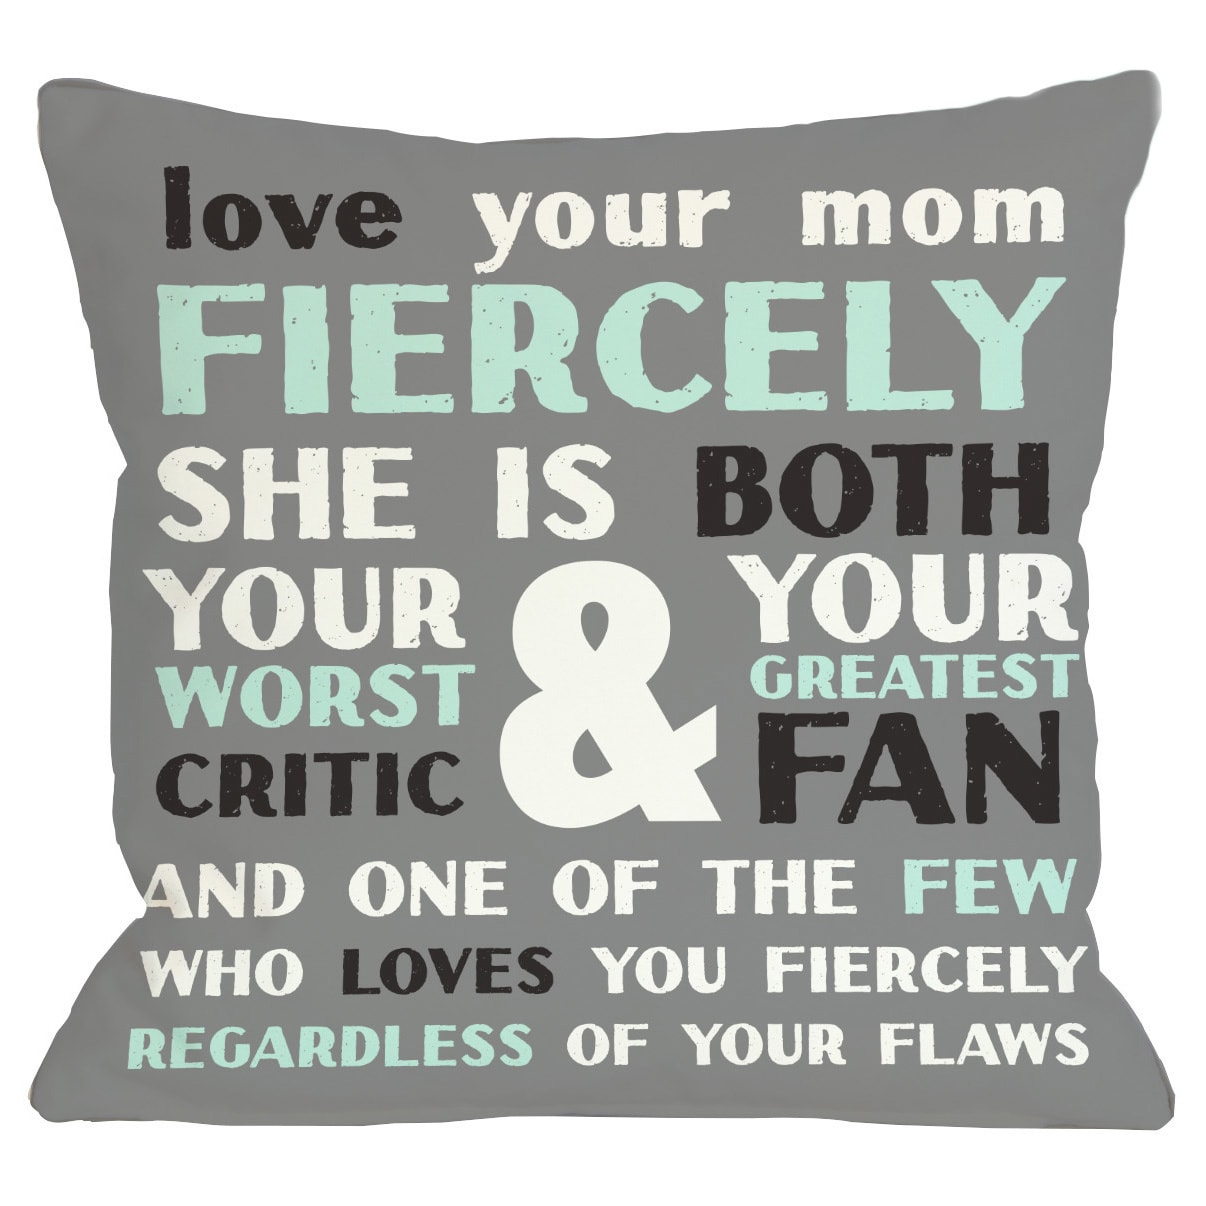 Love Your Mom Fiercely Throw Pillow (18 x 18 Pillow)